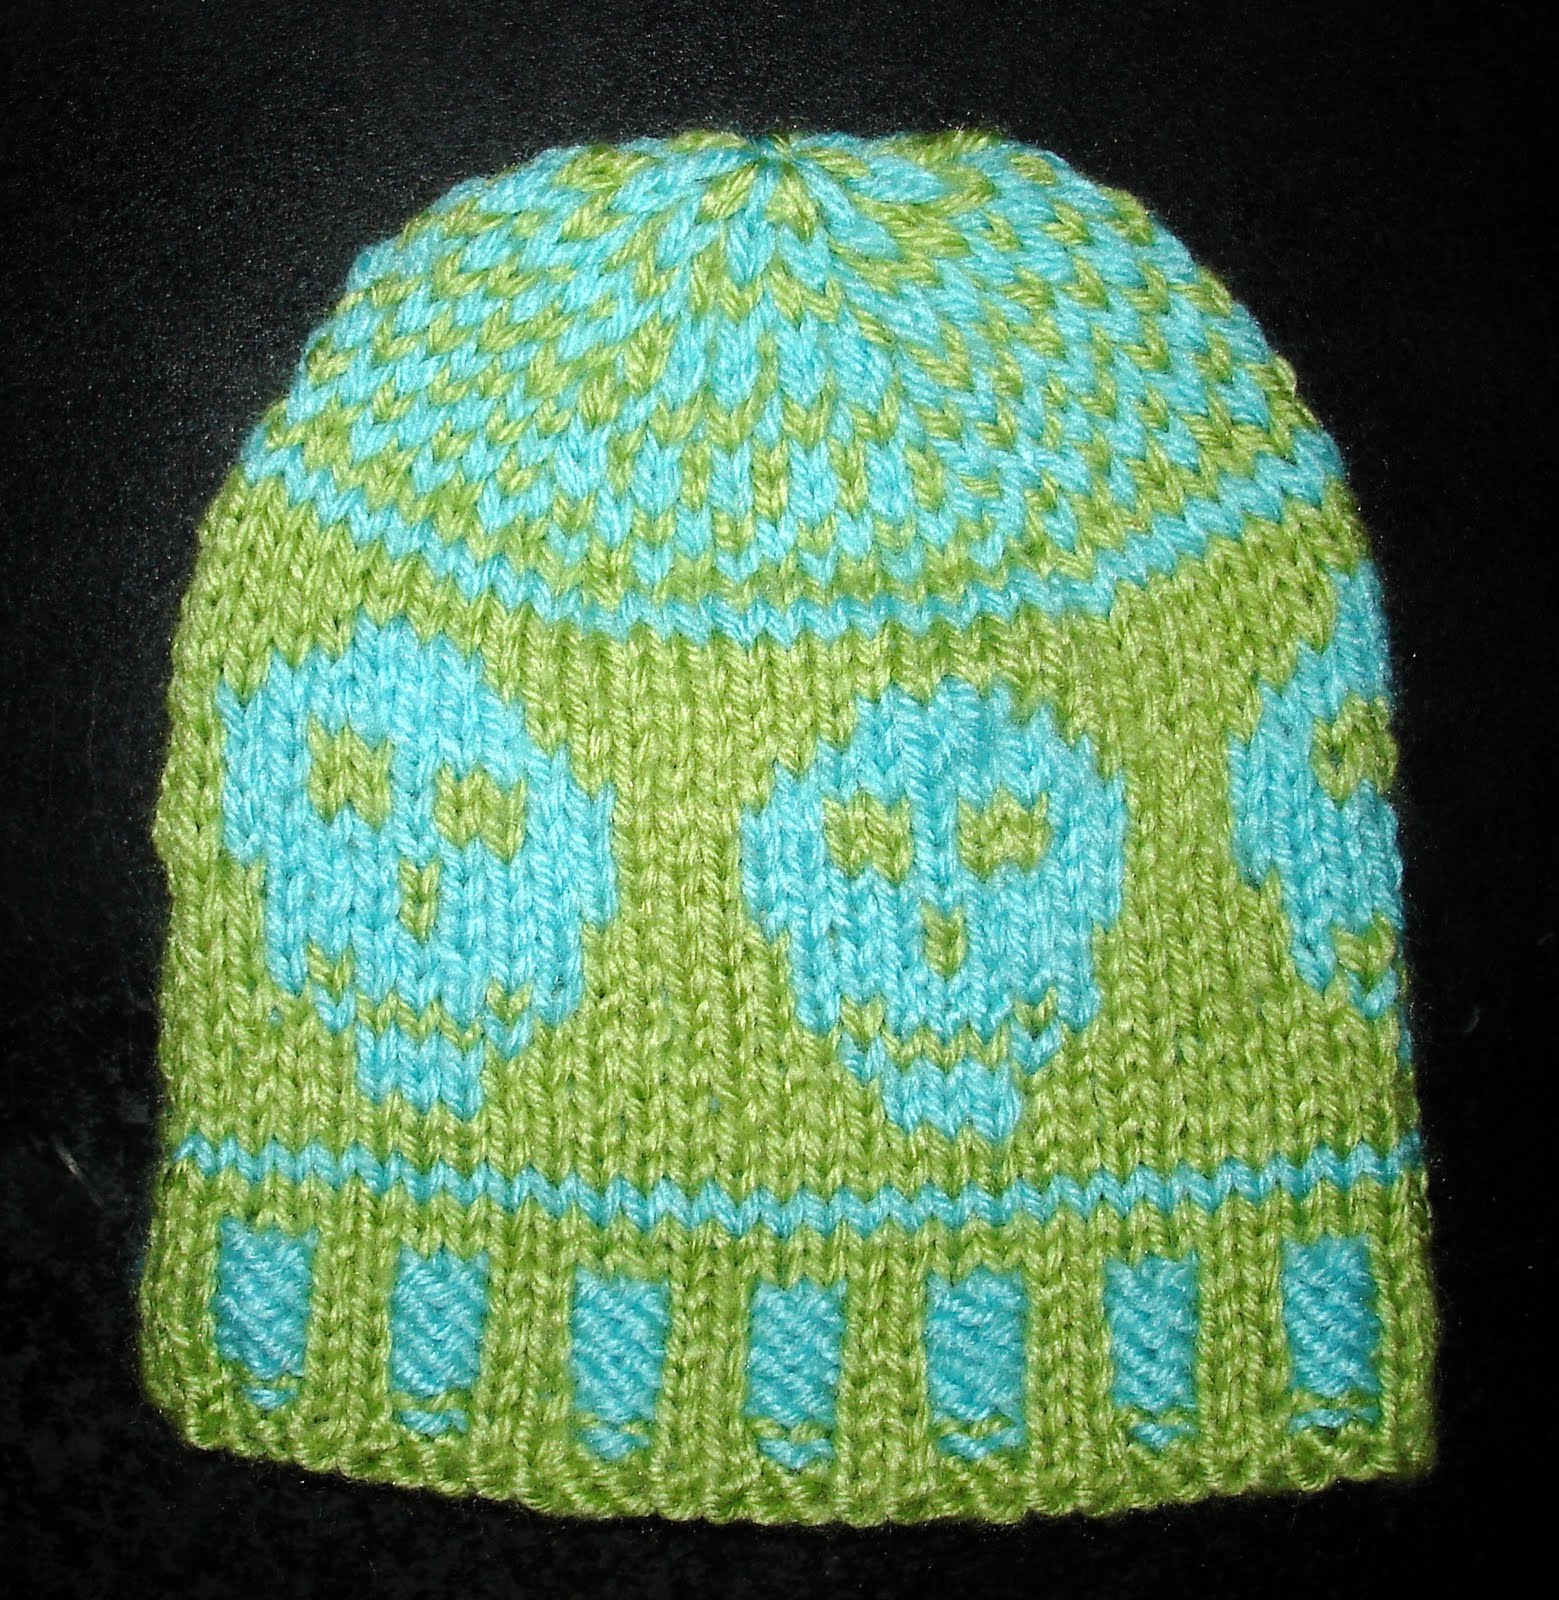 Smoothfox Crochet And Knit Smoothfox S Happy Skull Hat For Little